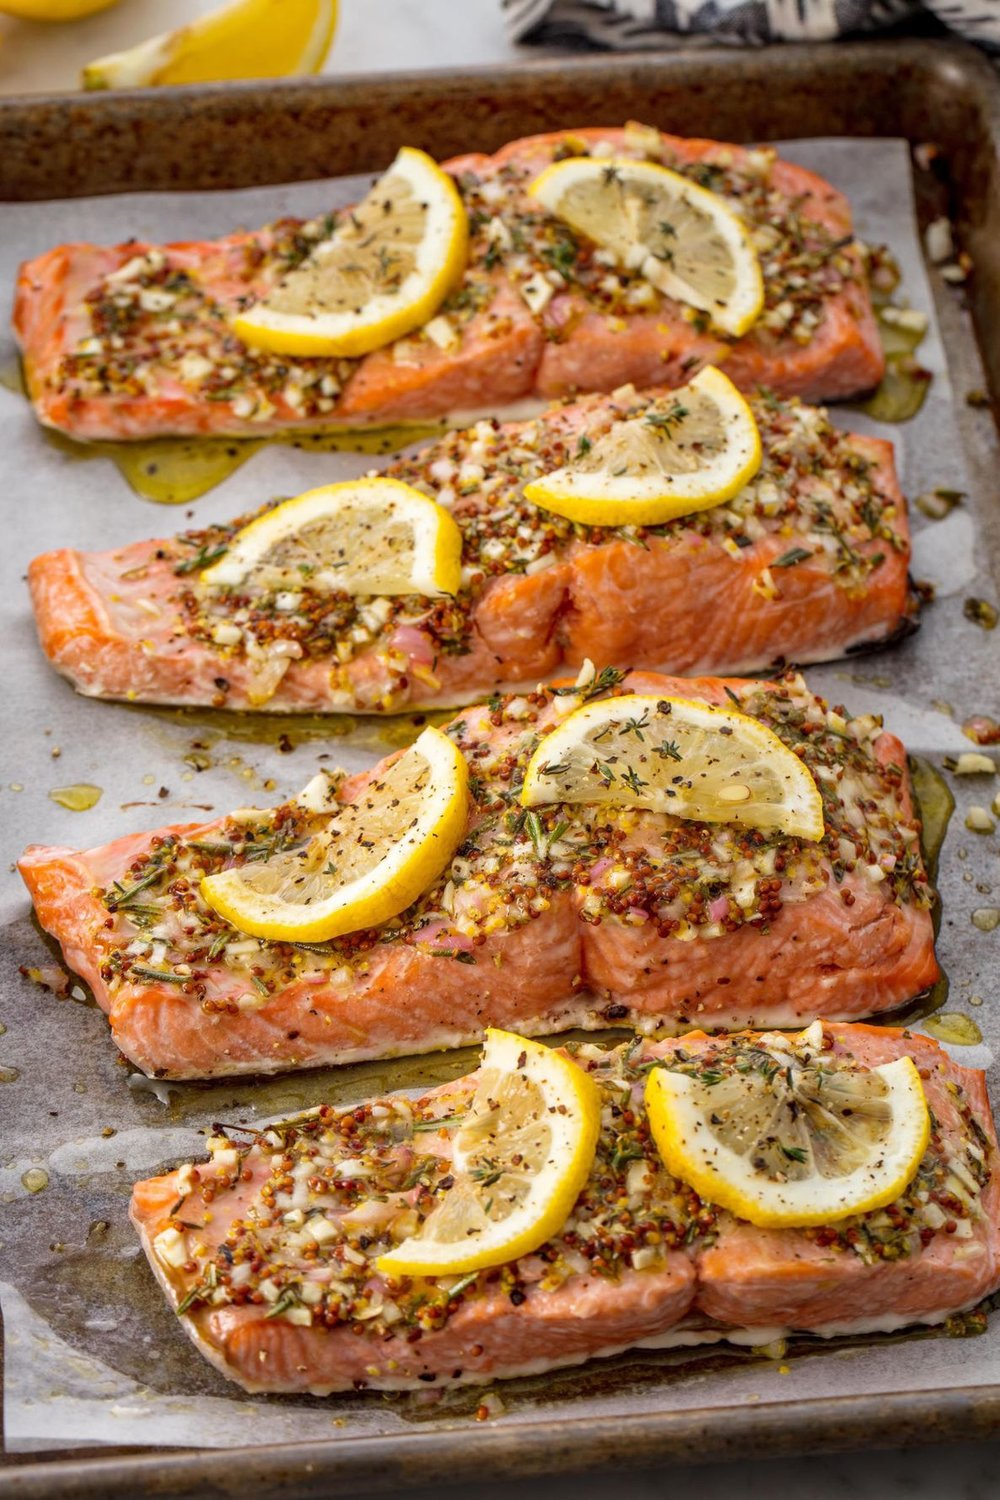 gallery-1506010632-broiled-salmon-delish-1.jpg